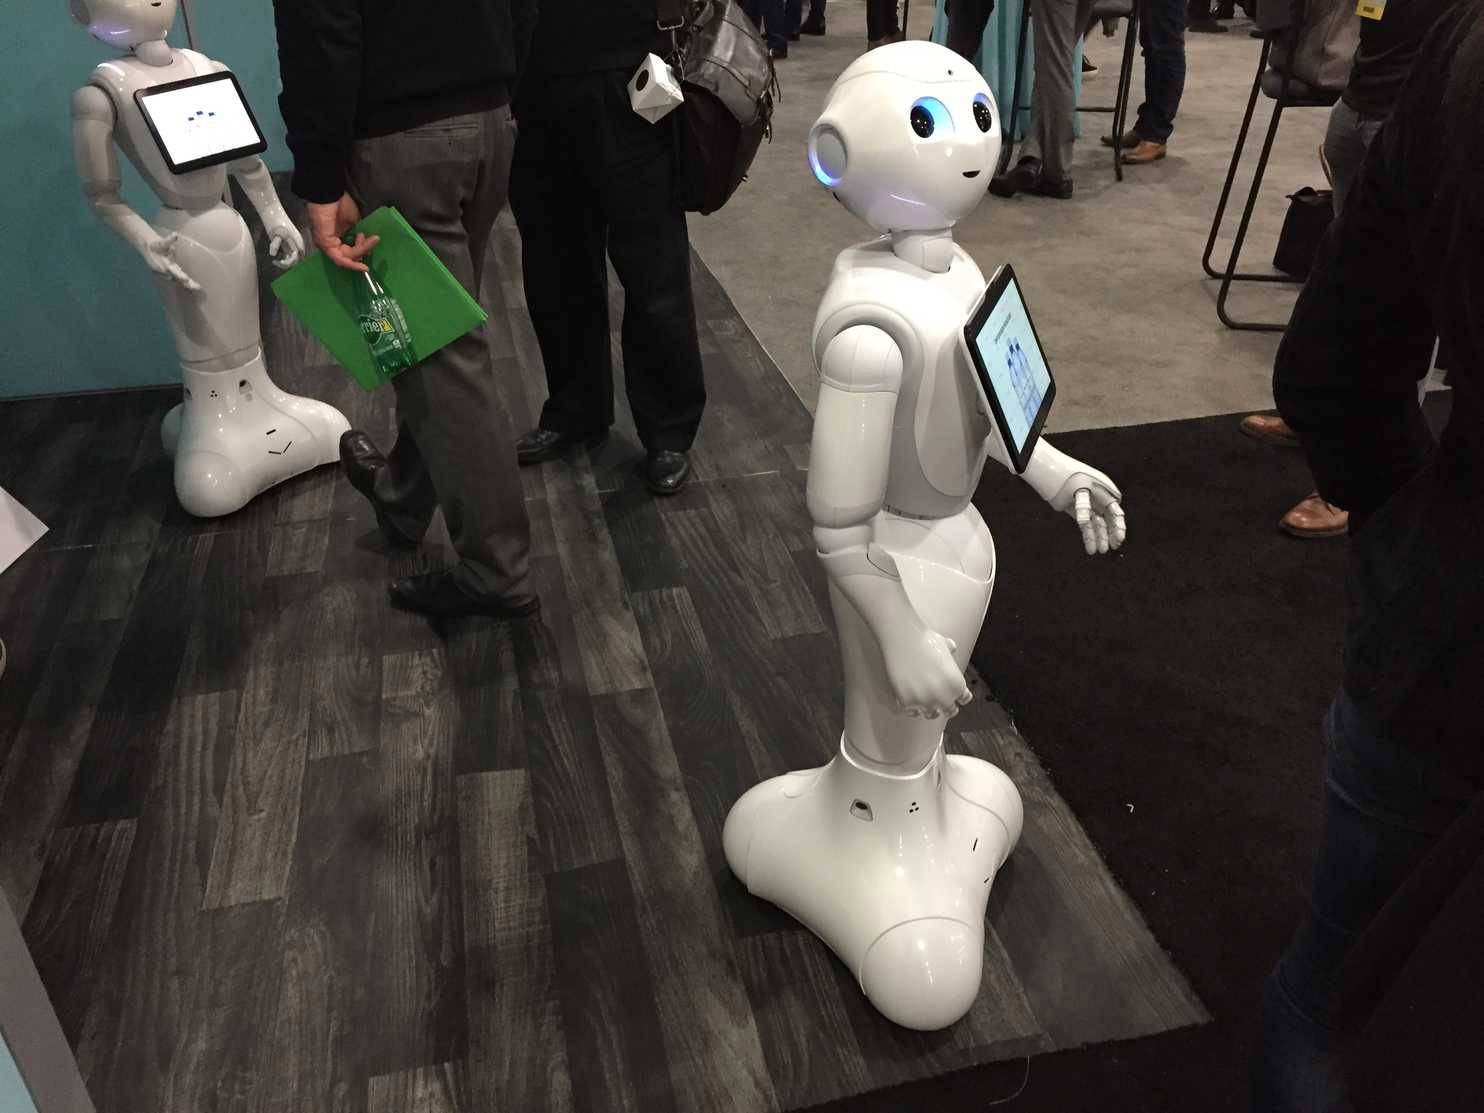 Pepper, a humanoid robot made by Softbank Robotics. The company has a vision of a world in which many retailers incorporate this technology into brick-and-mortar stores, in which it feels normal and reflexive for you to approach a robot with customer service questions.